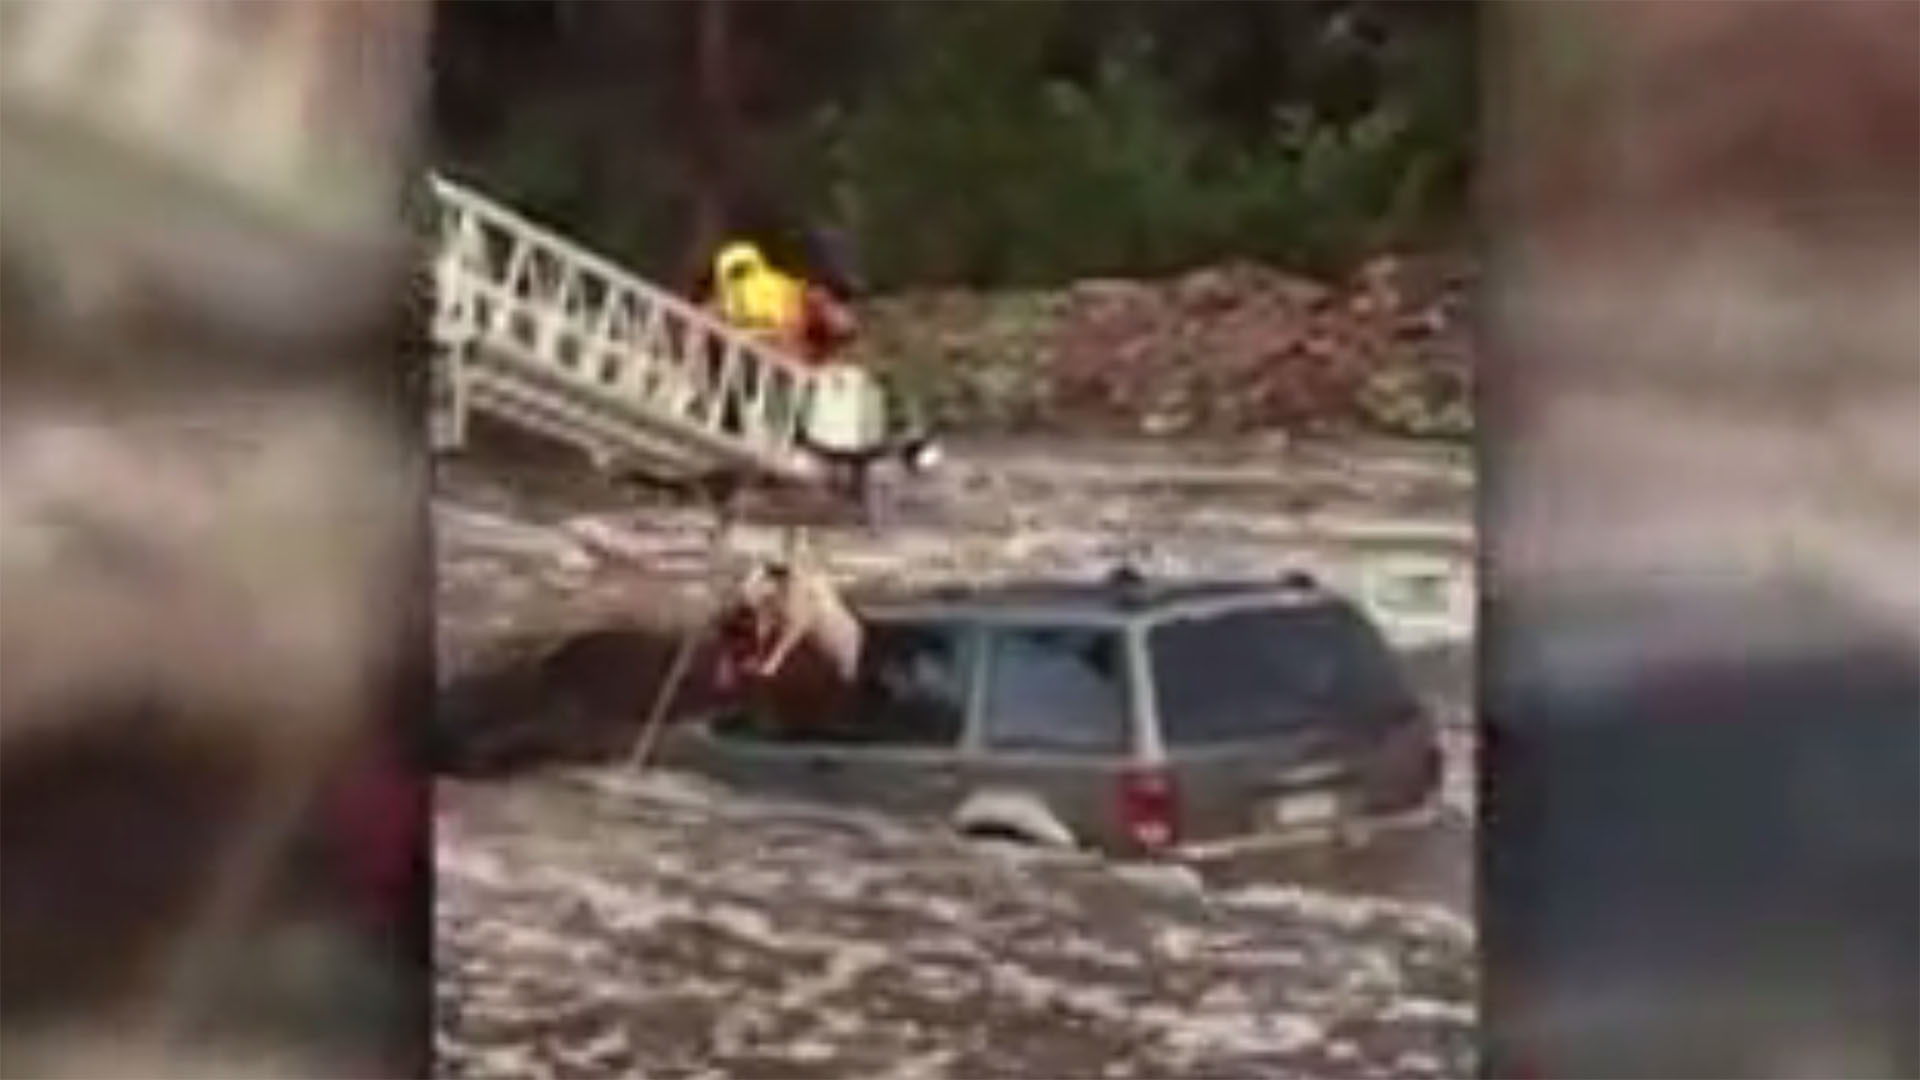 man, dog rescued from raging creek, video screenshot38174045-159532